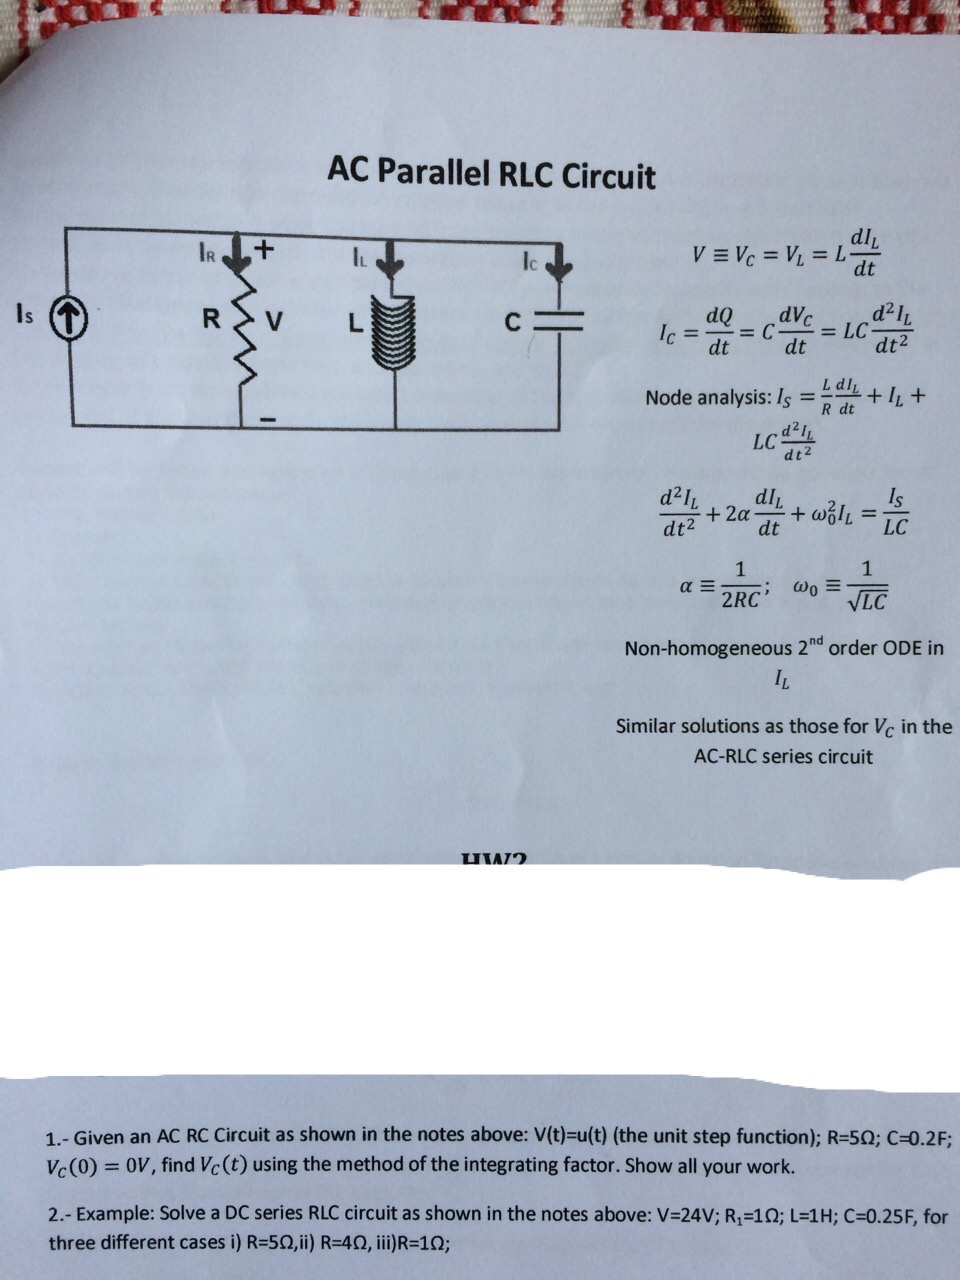 Given An Ac Rc Circuit As Shown In The Notes Above Dc